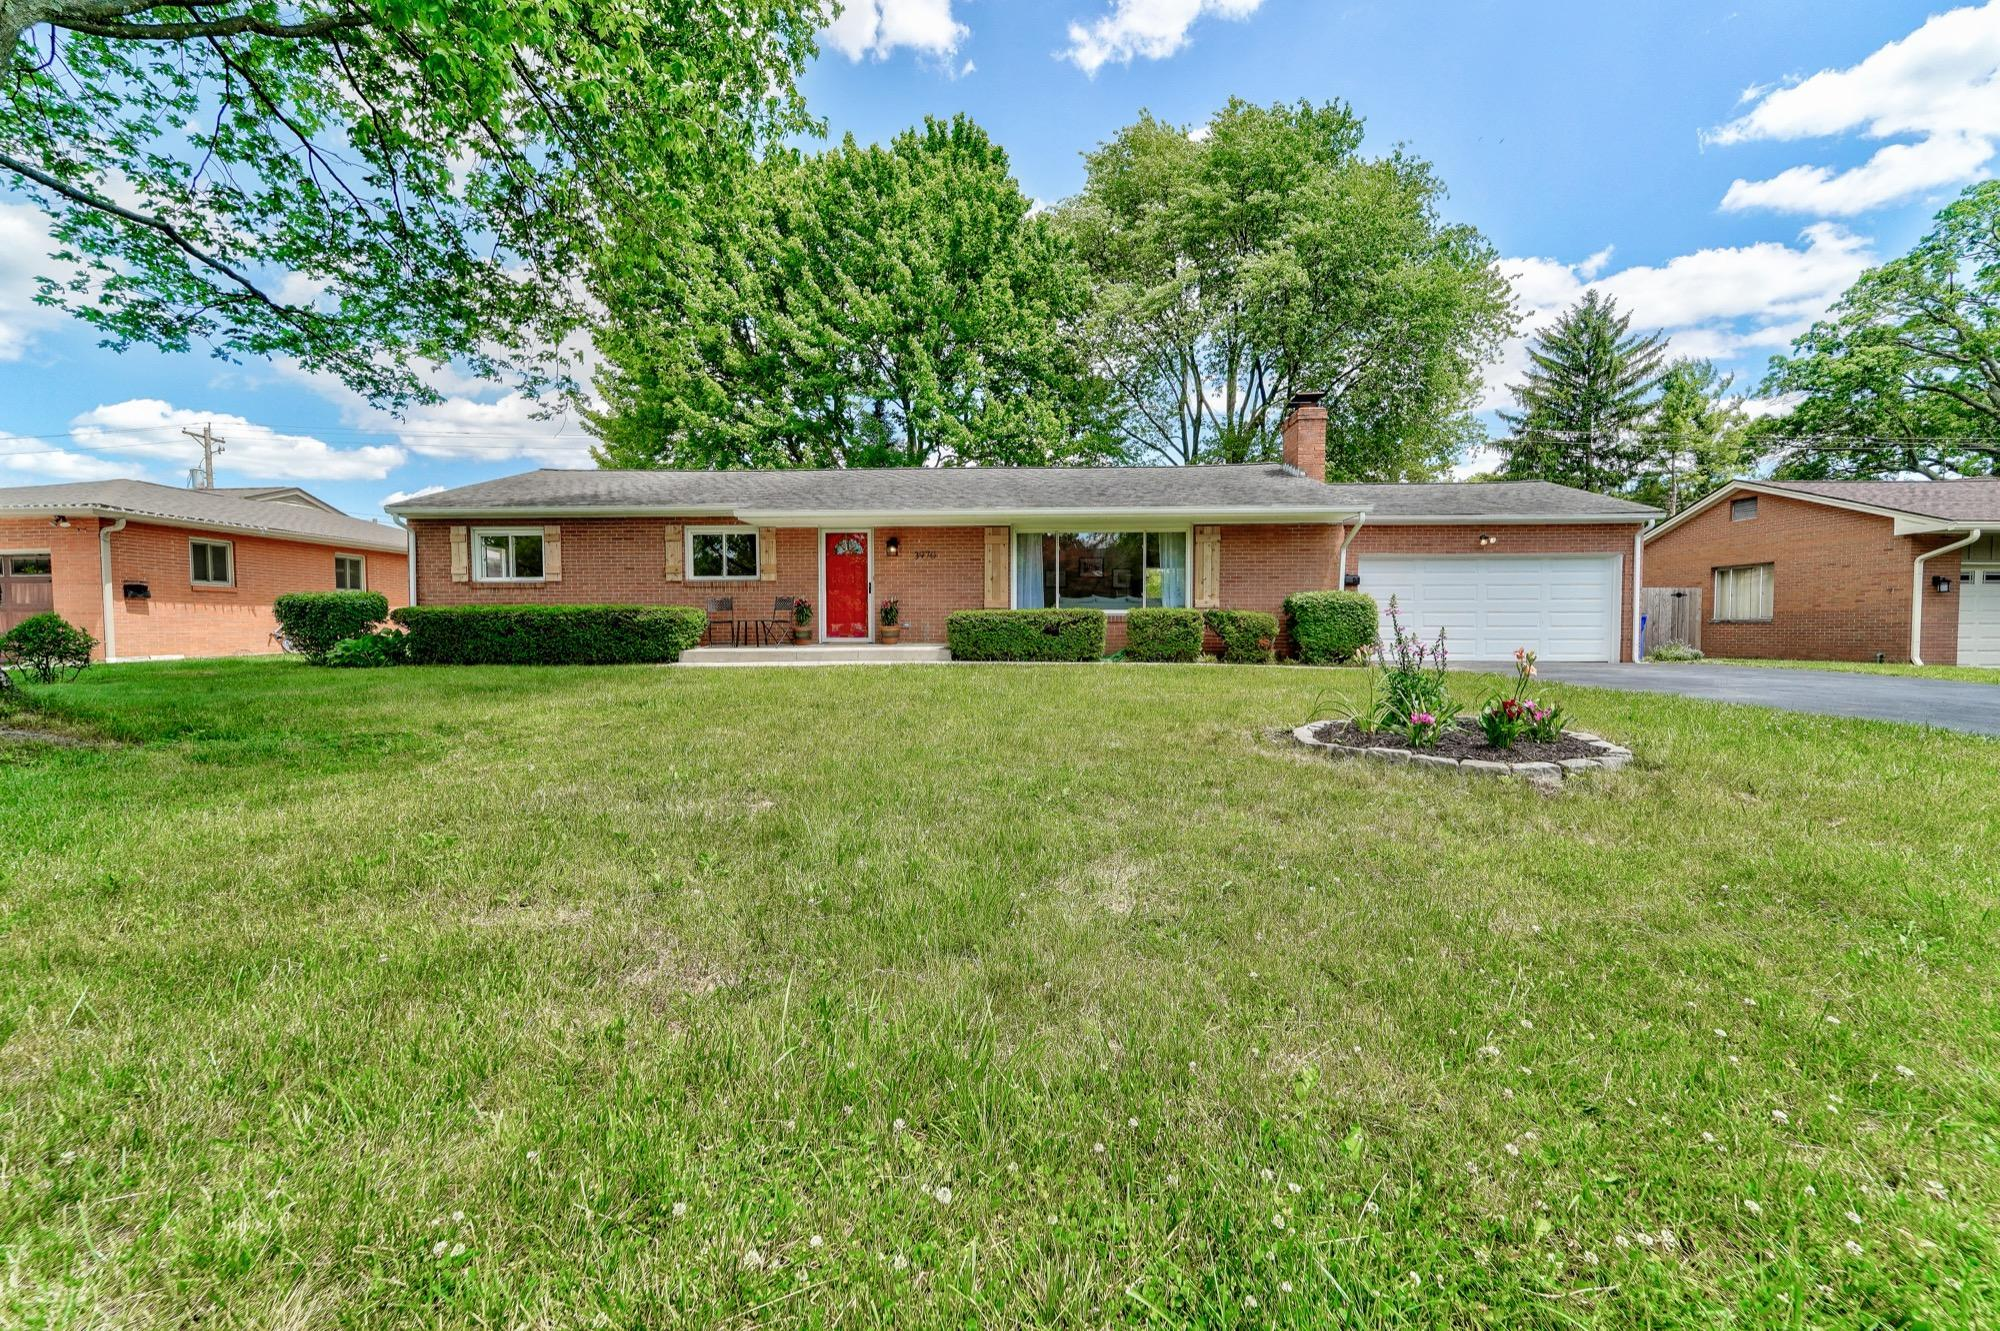 3970 Mountview Road, Columbus, Ohio 43220, 3 Bedrooms Bedrooms, ,3 BathroomsBathrooms,Residential,For Sale,Mountview,220018298